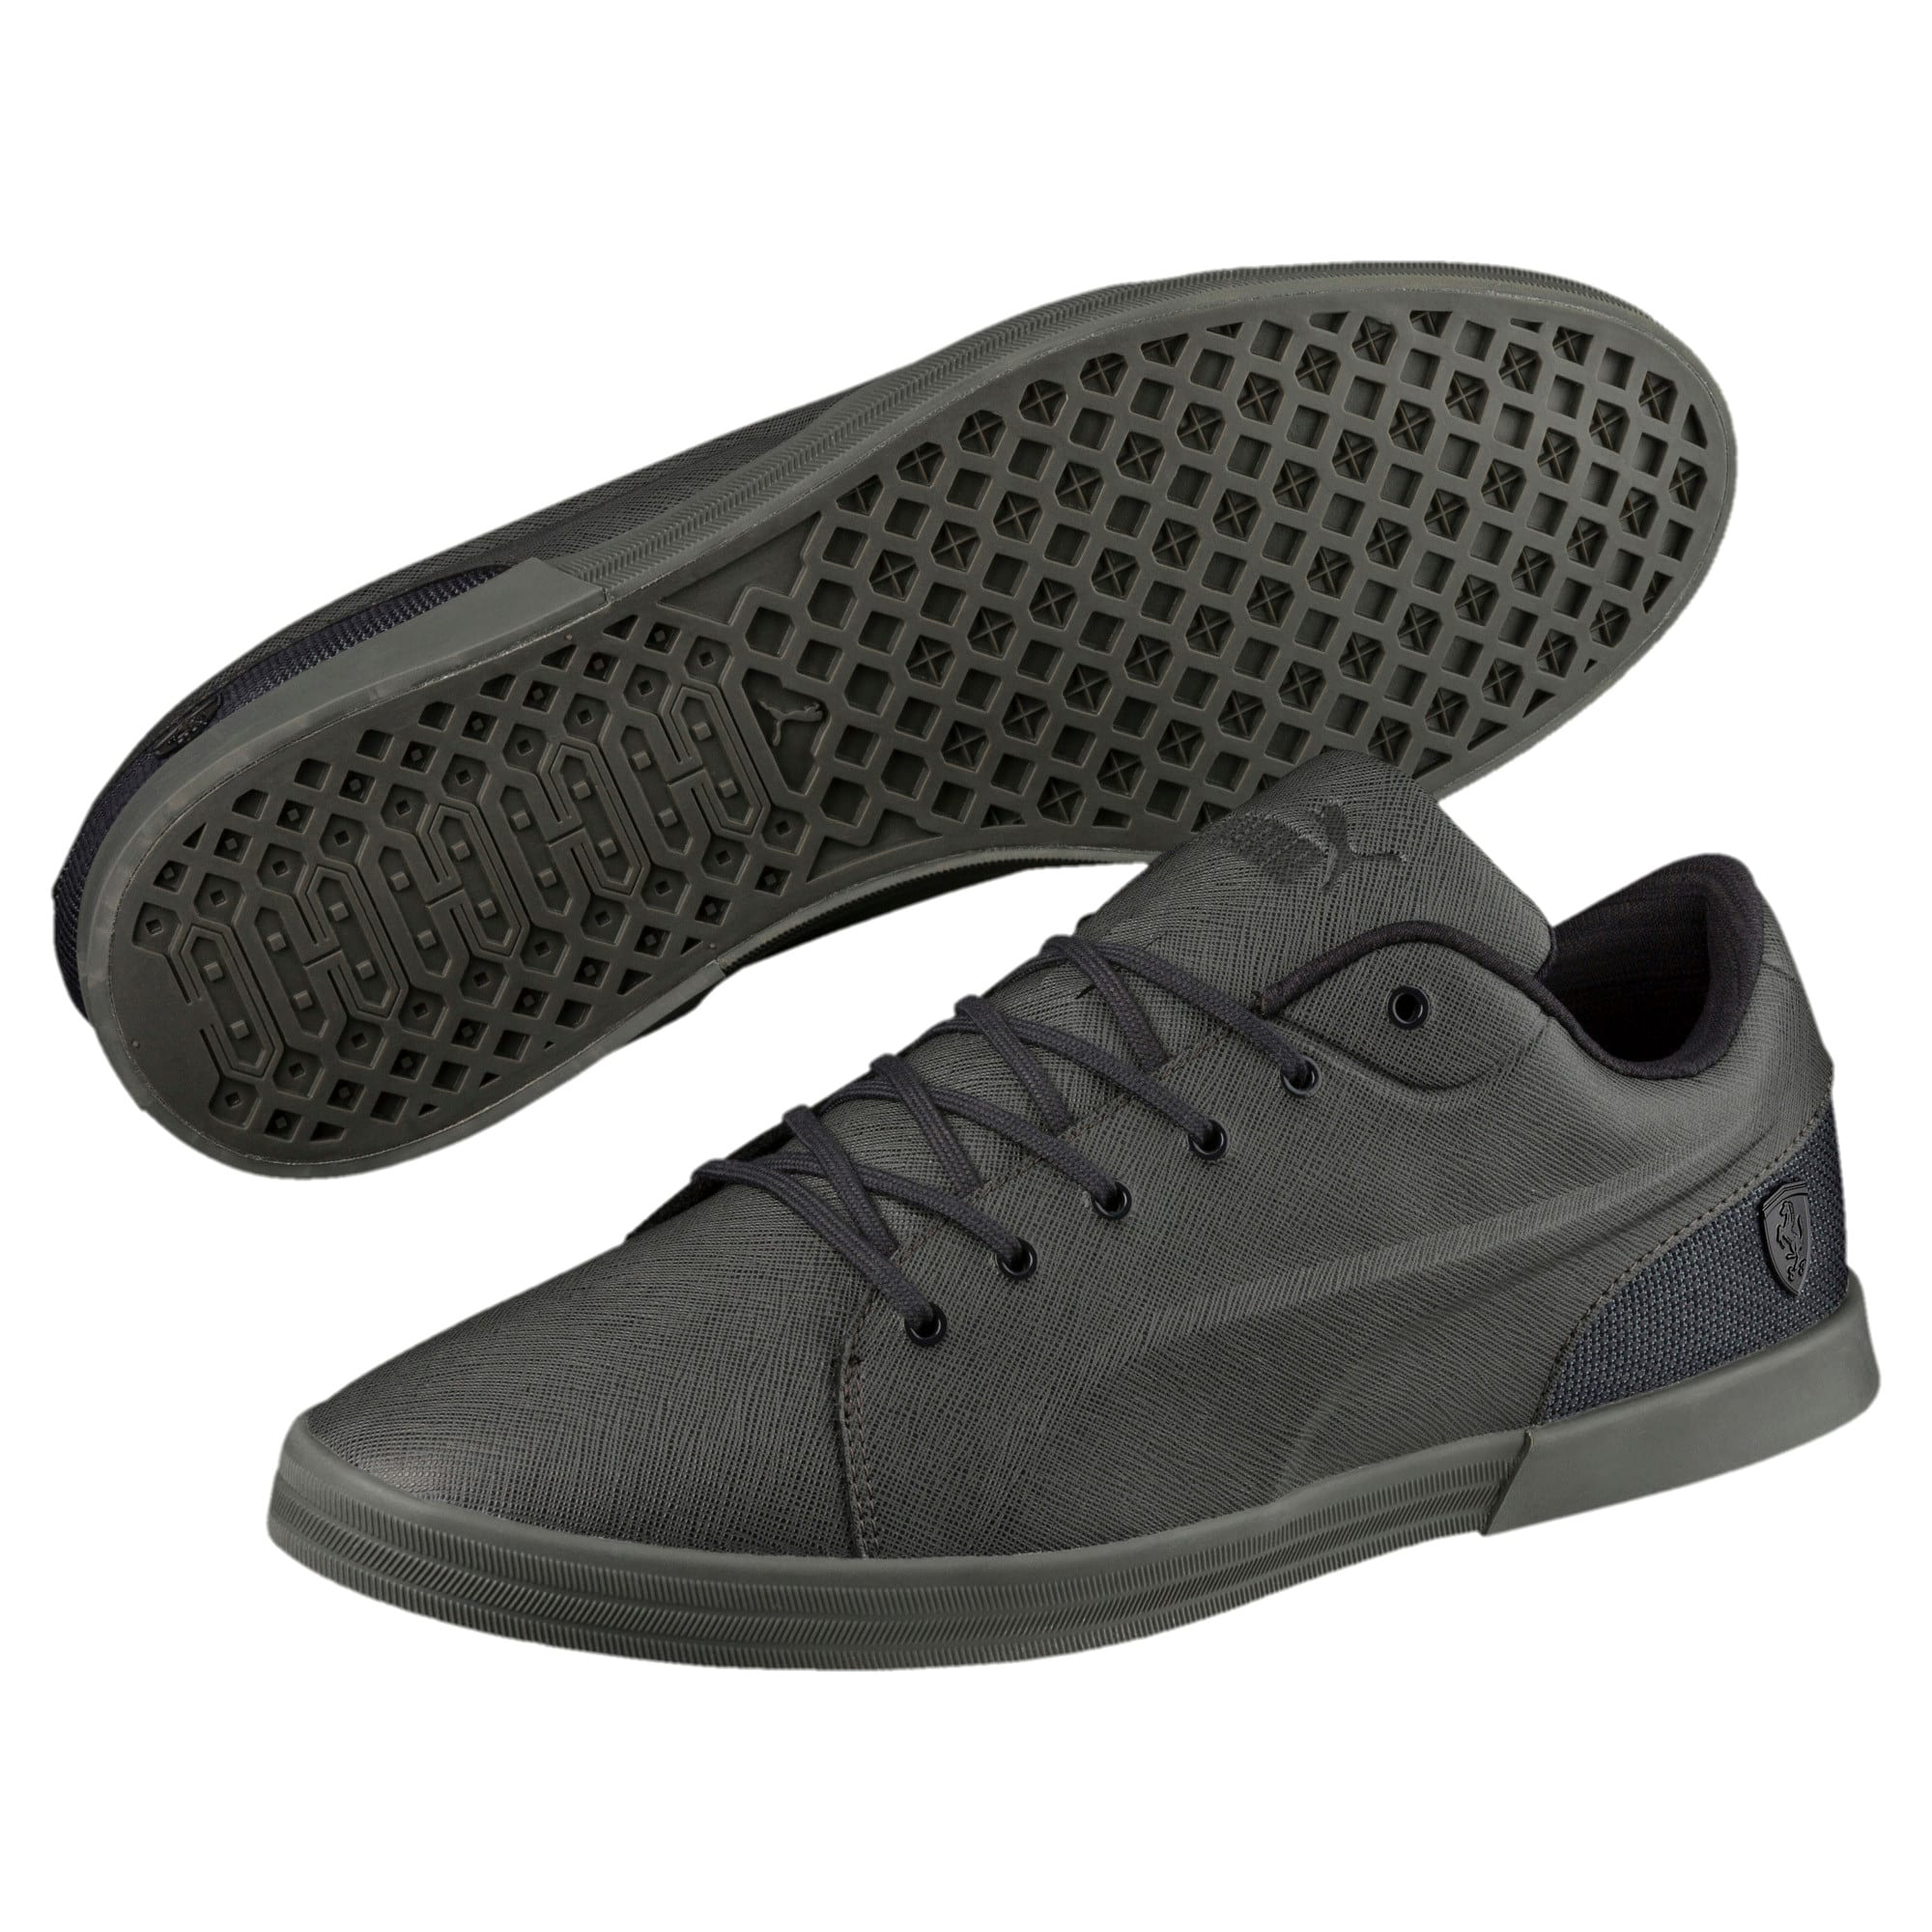 Thumbnail 2 of Ferrari Wayfarer Trainers, Moonless Night-Dark Shadow, medium-IND